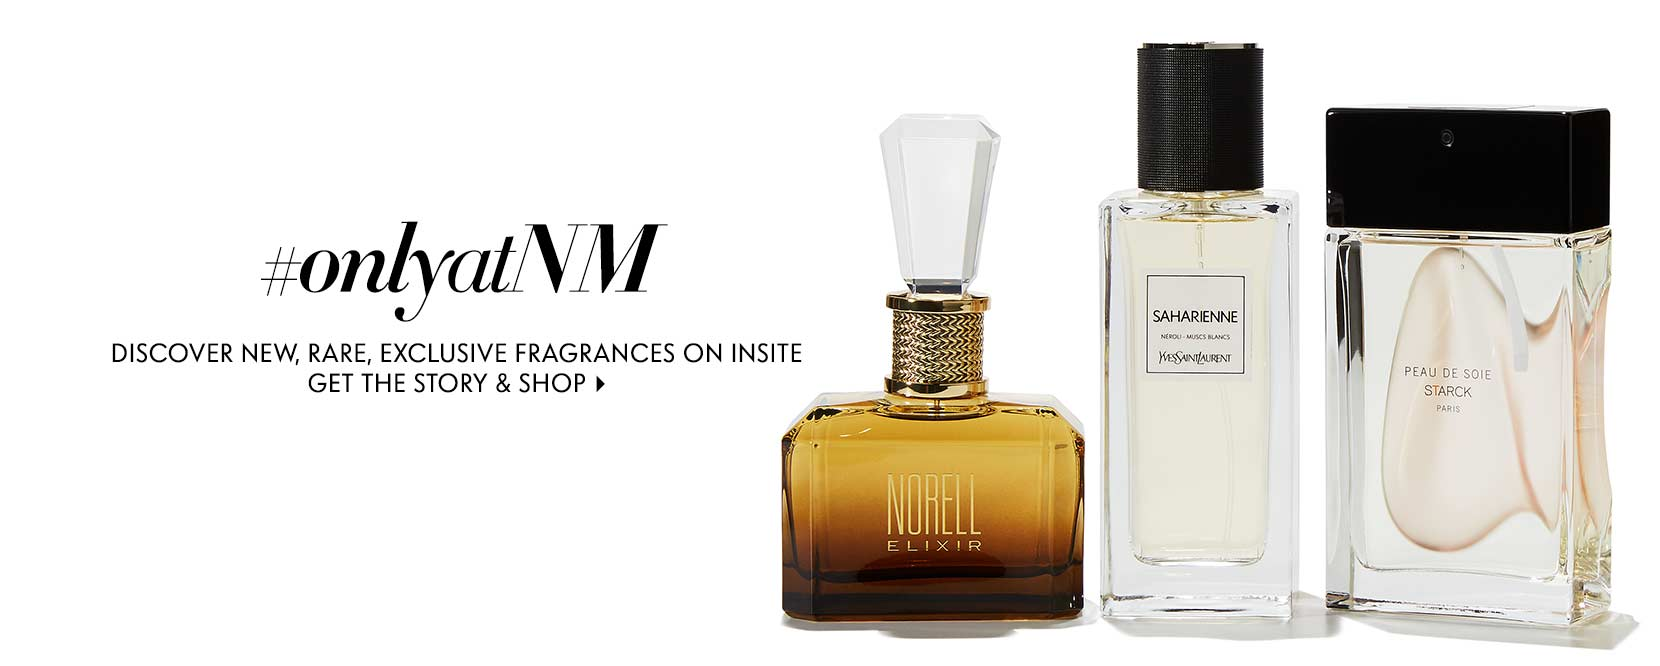 #onlyatNM discover new, rare, exclusive fragrances on Insite